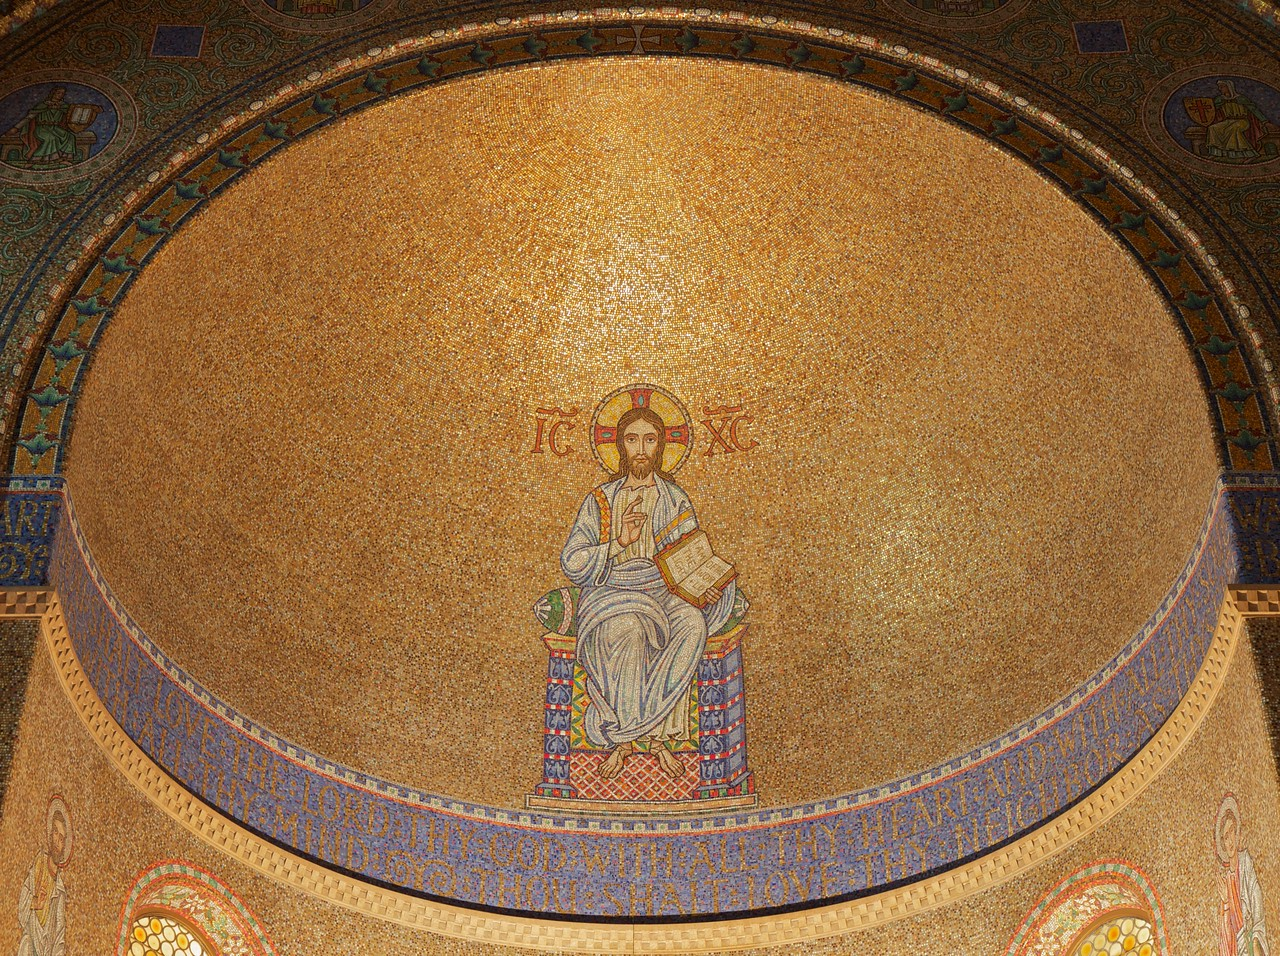 """Christ Church Apse and Nave<br /> <br /> From """"A Tour of Christ Church:""""<br /> <br /> """"The apse is decorated with mosaics, which are formed from tesserae. Tesserae are cubes of glass or vitreous enamel set in mastic or cement at uneven angles so that they reflect the light in a sparkling manner. There are said to be seven million tesserae in Christ Church. One's eye is drawn to the figure of Christ in the apse, and the use of gold leaf for the background adds richness and depth. This representation is known as Christ Pantocratur. Pantocratur is a Greek word meaning """"all powerful"""" and representations of Christ Pantocratur are widely used in Eastern Orthodox churches. Christ is portrayed as King and He is clad in the robes of a Byzantine Emperor. The bands on His shoulders are part of the imperial insignia and He is seated on the imperial throne. His right hand is raised in blessing – the Eastern style of blessing is used – and His left hand holds the Gospel of St. John, open at the text """"I am the light of the world"""" (John 8:12). On either side of His head are the letters IC_XC_ transliterated from the Greek, and this is an abbreviation for Jesus Christ. The surrounding tesserae are cunningly set so that the figure of Christ is bathed in light.<br /> <br /> Immediately below the figure of Christ is a curved band of blue with gold lettering. The text is from Matthew 22:27 and 39, and reads """"Thou shalt love the Lord with all thy heart and with all thy soul and with all thy mind. Thou shalt love thy neighbor as thyself.""""<br /> <br /> Surrounding the apse is a semi-circular band with seven medallions, each showing a figure holding a shield. This is a rather idiosyncratic interpretation of the seven gifts of the Holy Spirit, and the symbols on the shields, reading from left to right are: the Sun for understanding, a Book for counsel, a Lion for fortitude, a Dove for wisdom, a Lamp for knowledge, a Cross for piety and a Crown for spiritual reward. <br /> Below this band on """